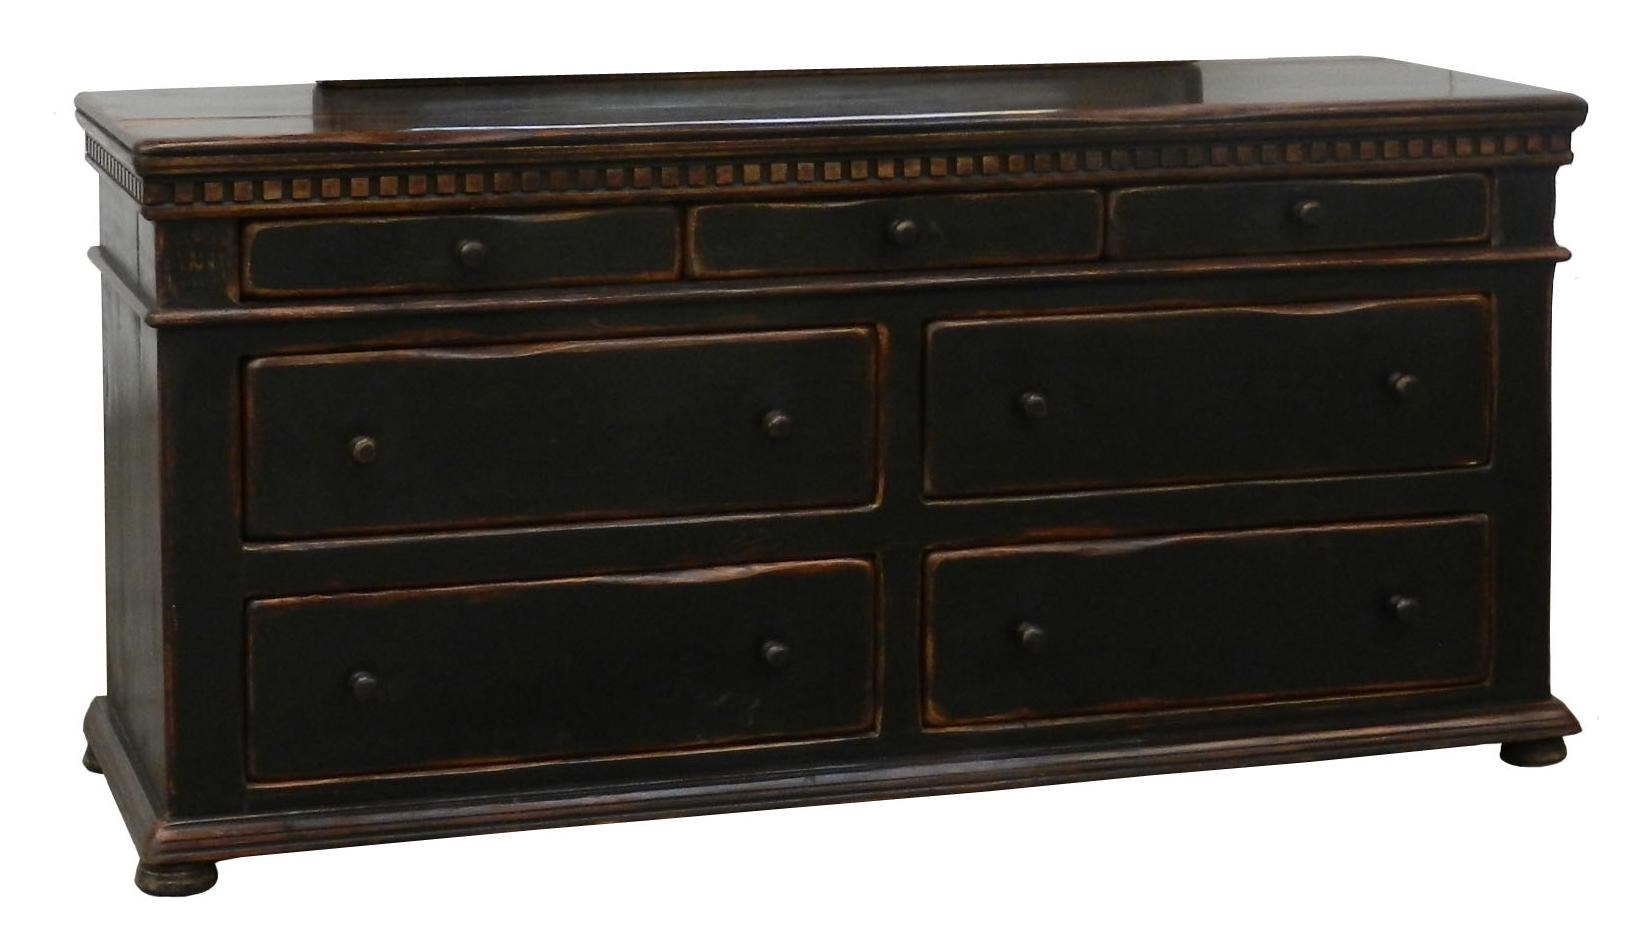 Superb Furniture Source International Easton 7 Drawer Dresser